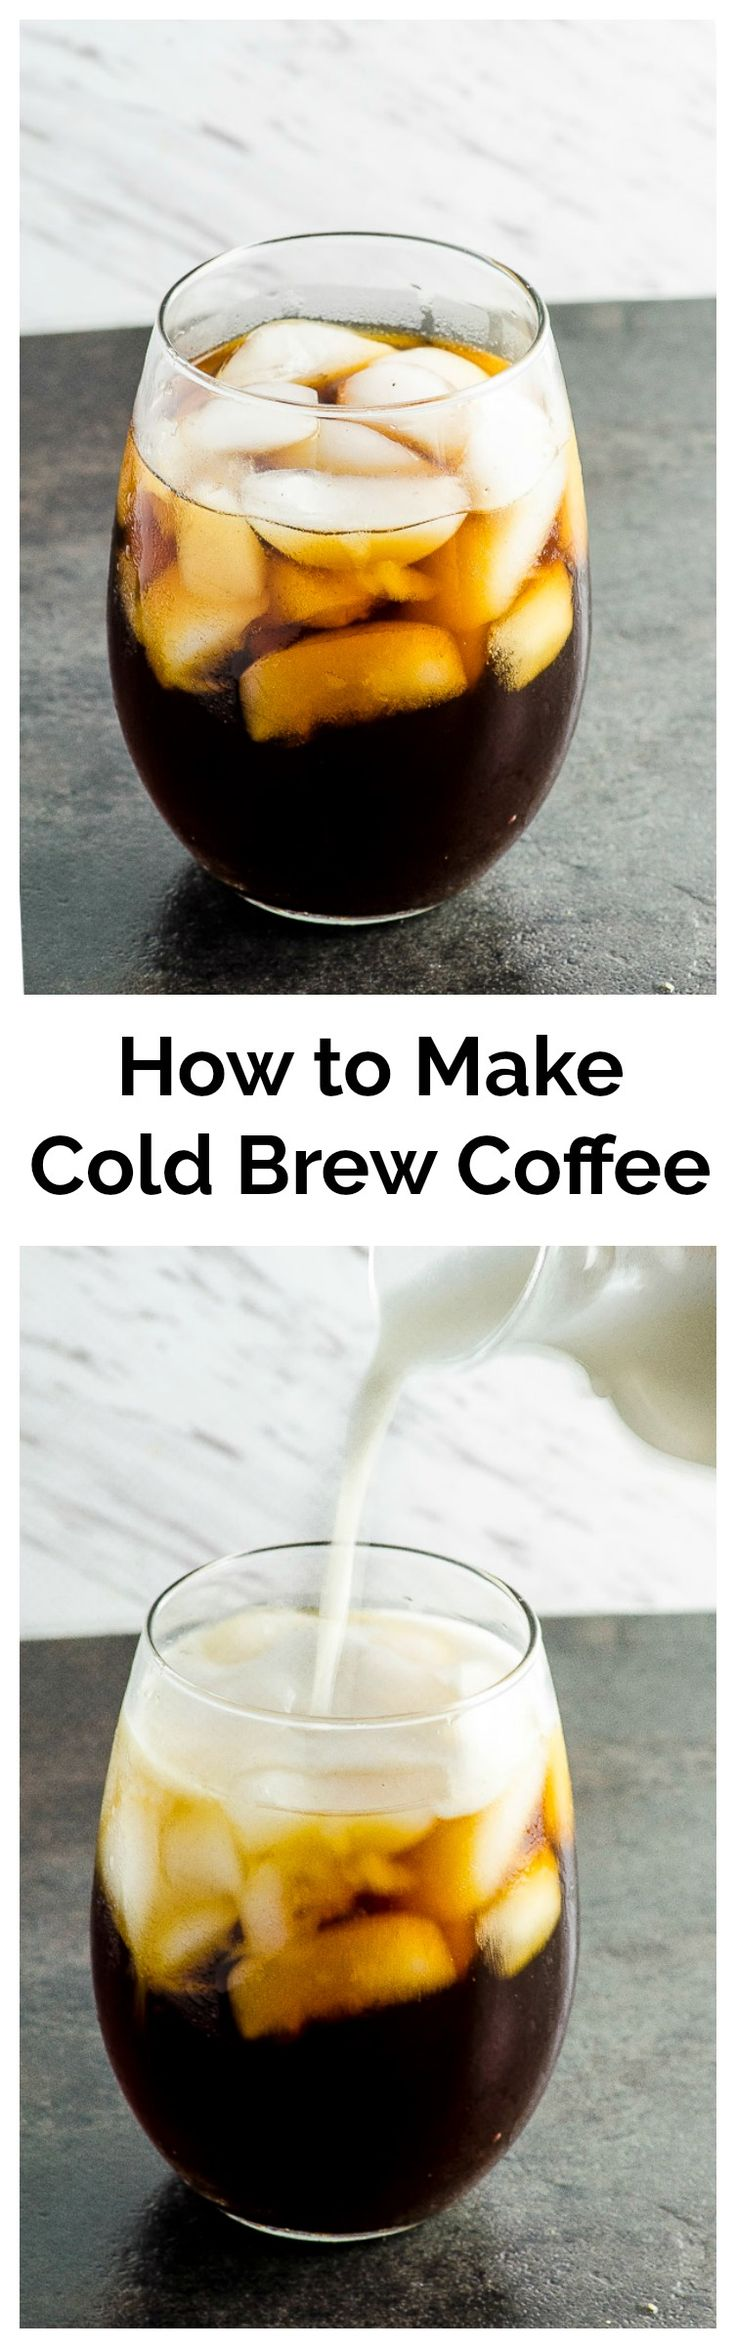 How to make Cold brew. You've probably seen cold brew coffee pop up all over the place lately. But, what exactly is cold brew coffee? To put it simply, it's  coffee that is brewed in cold, not hot, water. The result is a smooth, less acidic coffee where its true flavor shines without being bitter.